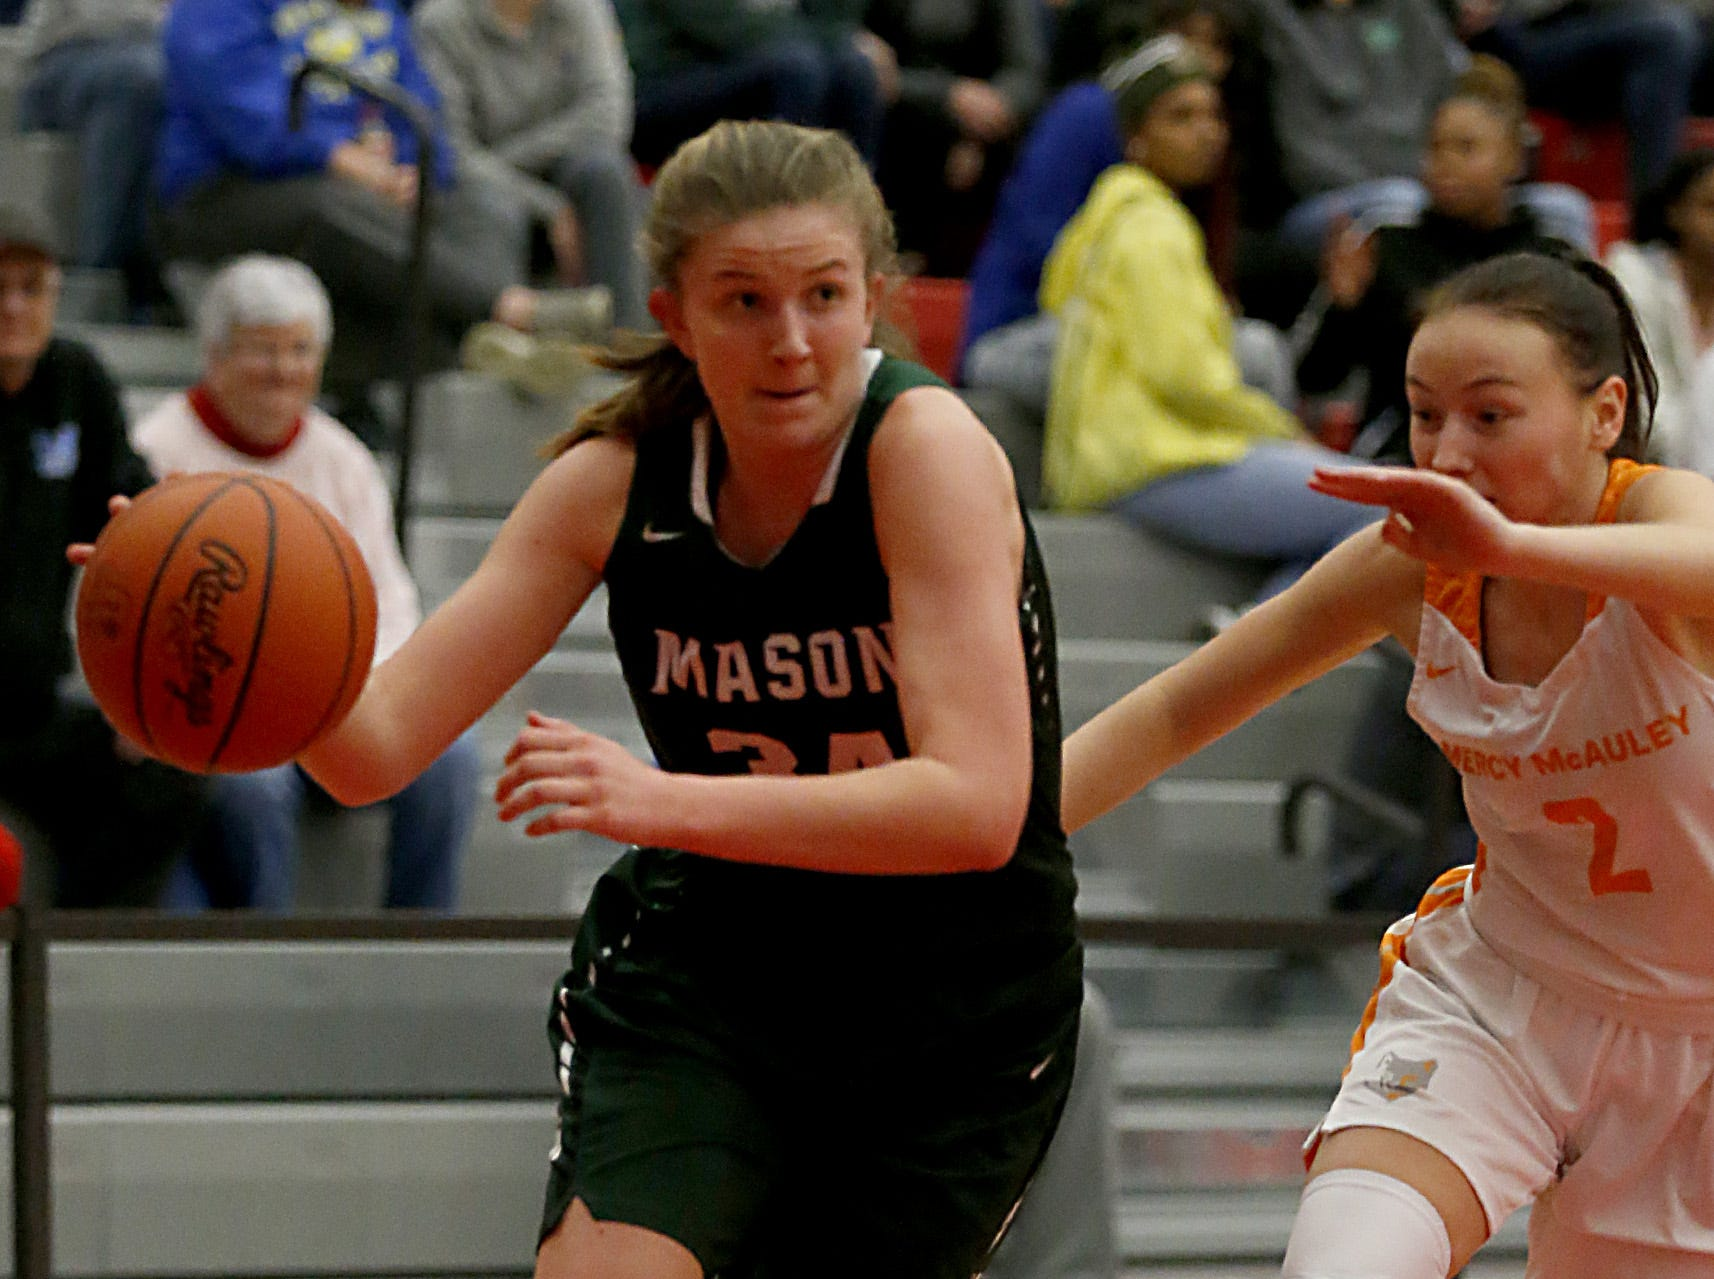 Mason's Marilyn Popplewell is covered by Mercy McAuley's Kieran Casey during the Southwest District Girls Division I finals at Princeton High School in Cincinnati Saturday, March 2, 2019.